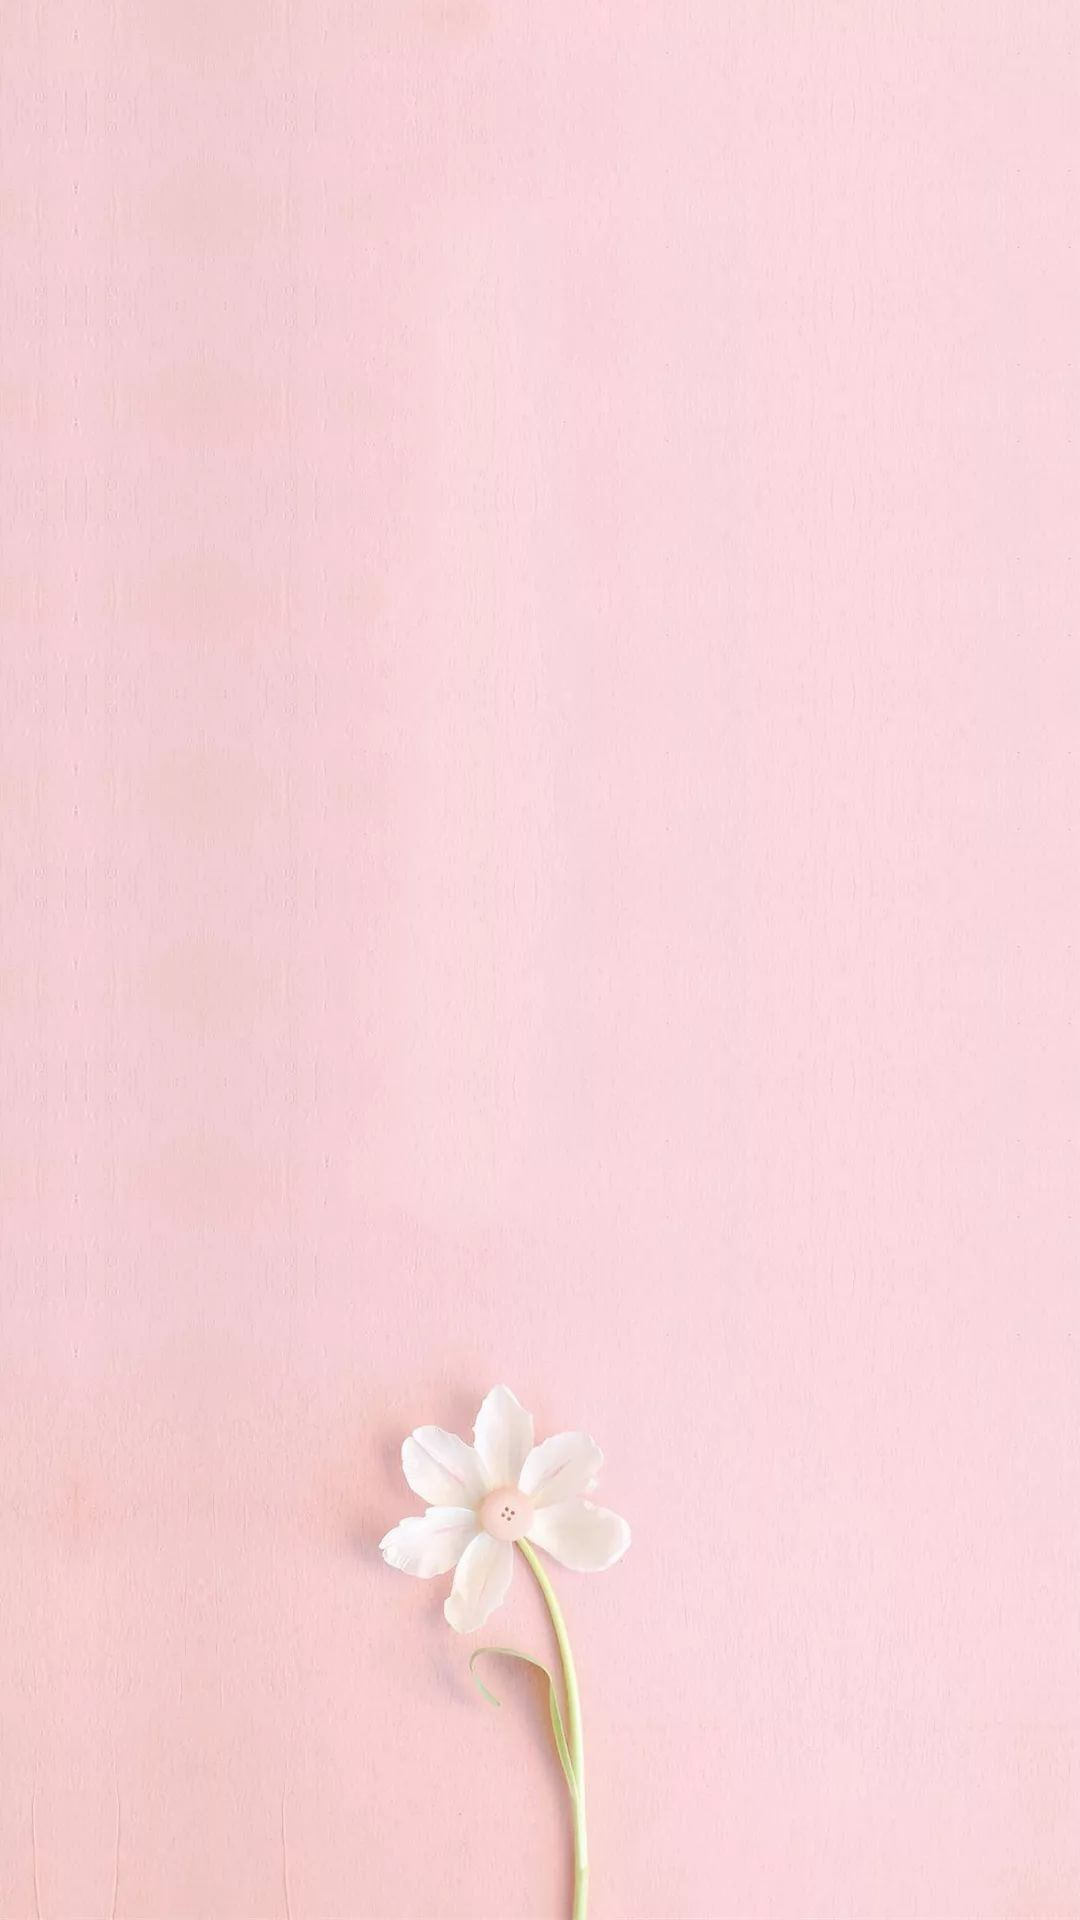 20 Solid Pink Iphone Wallpapers Wallpaperboat